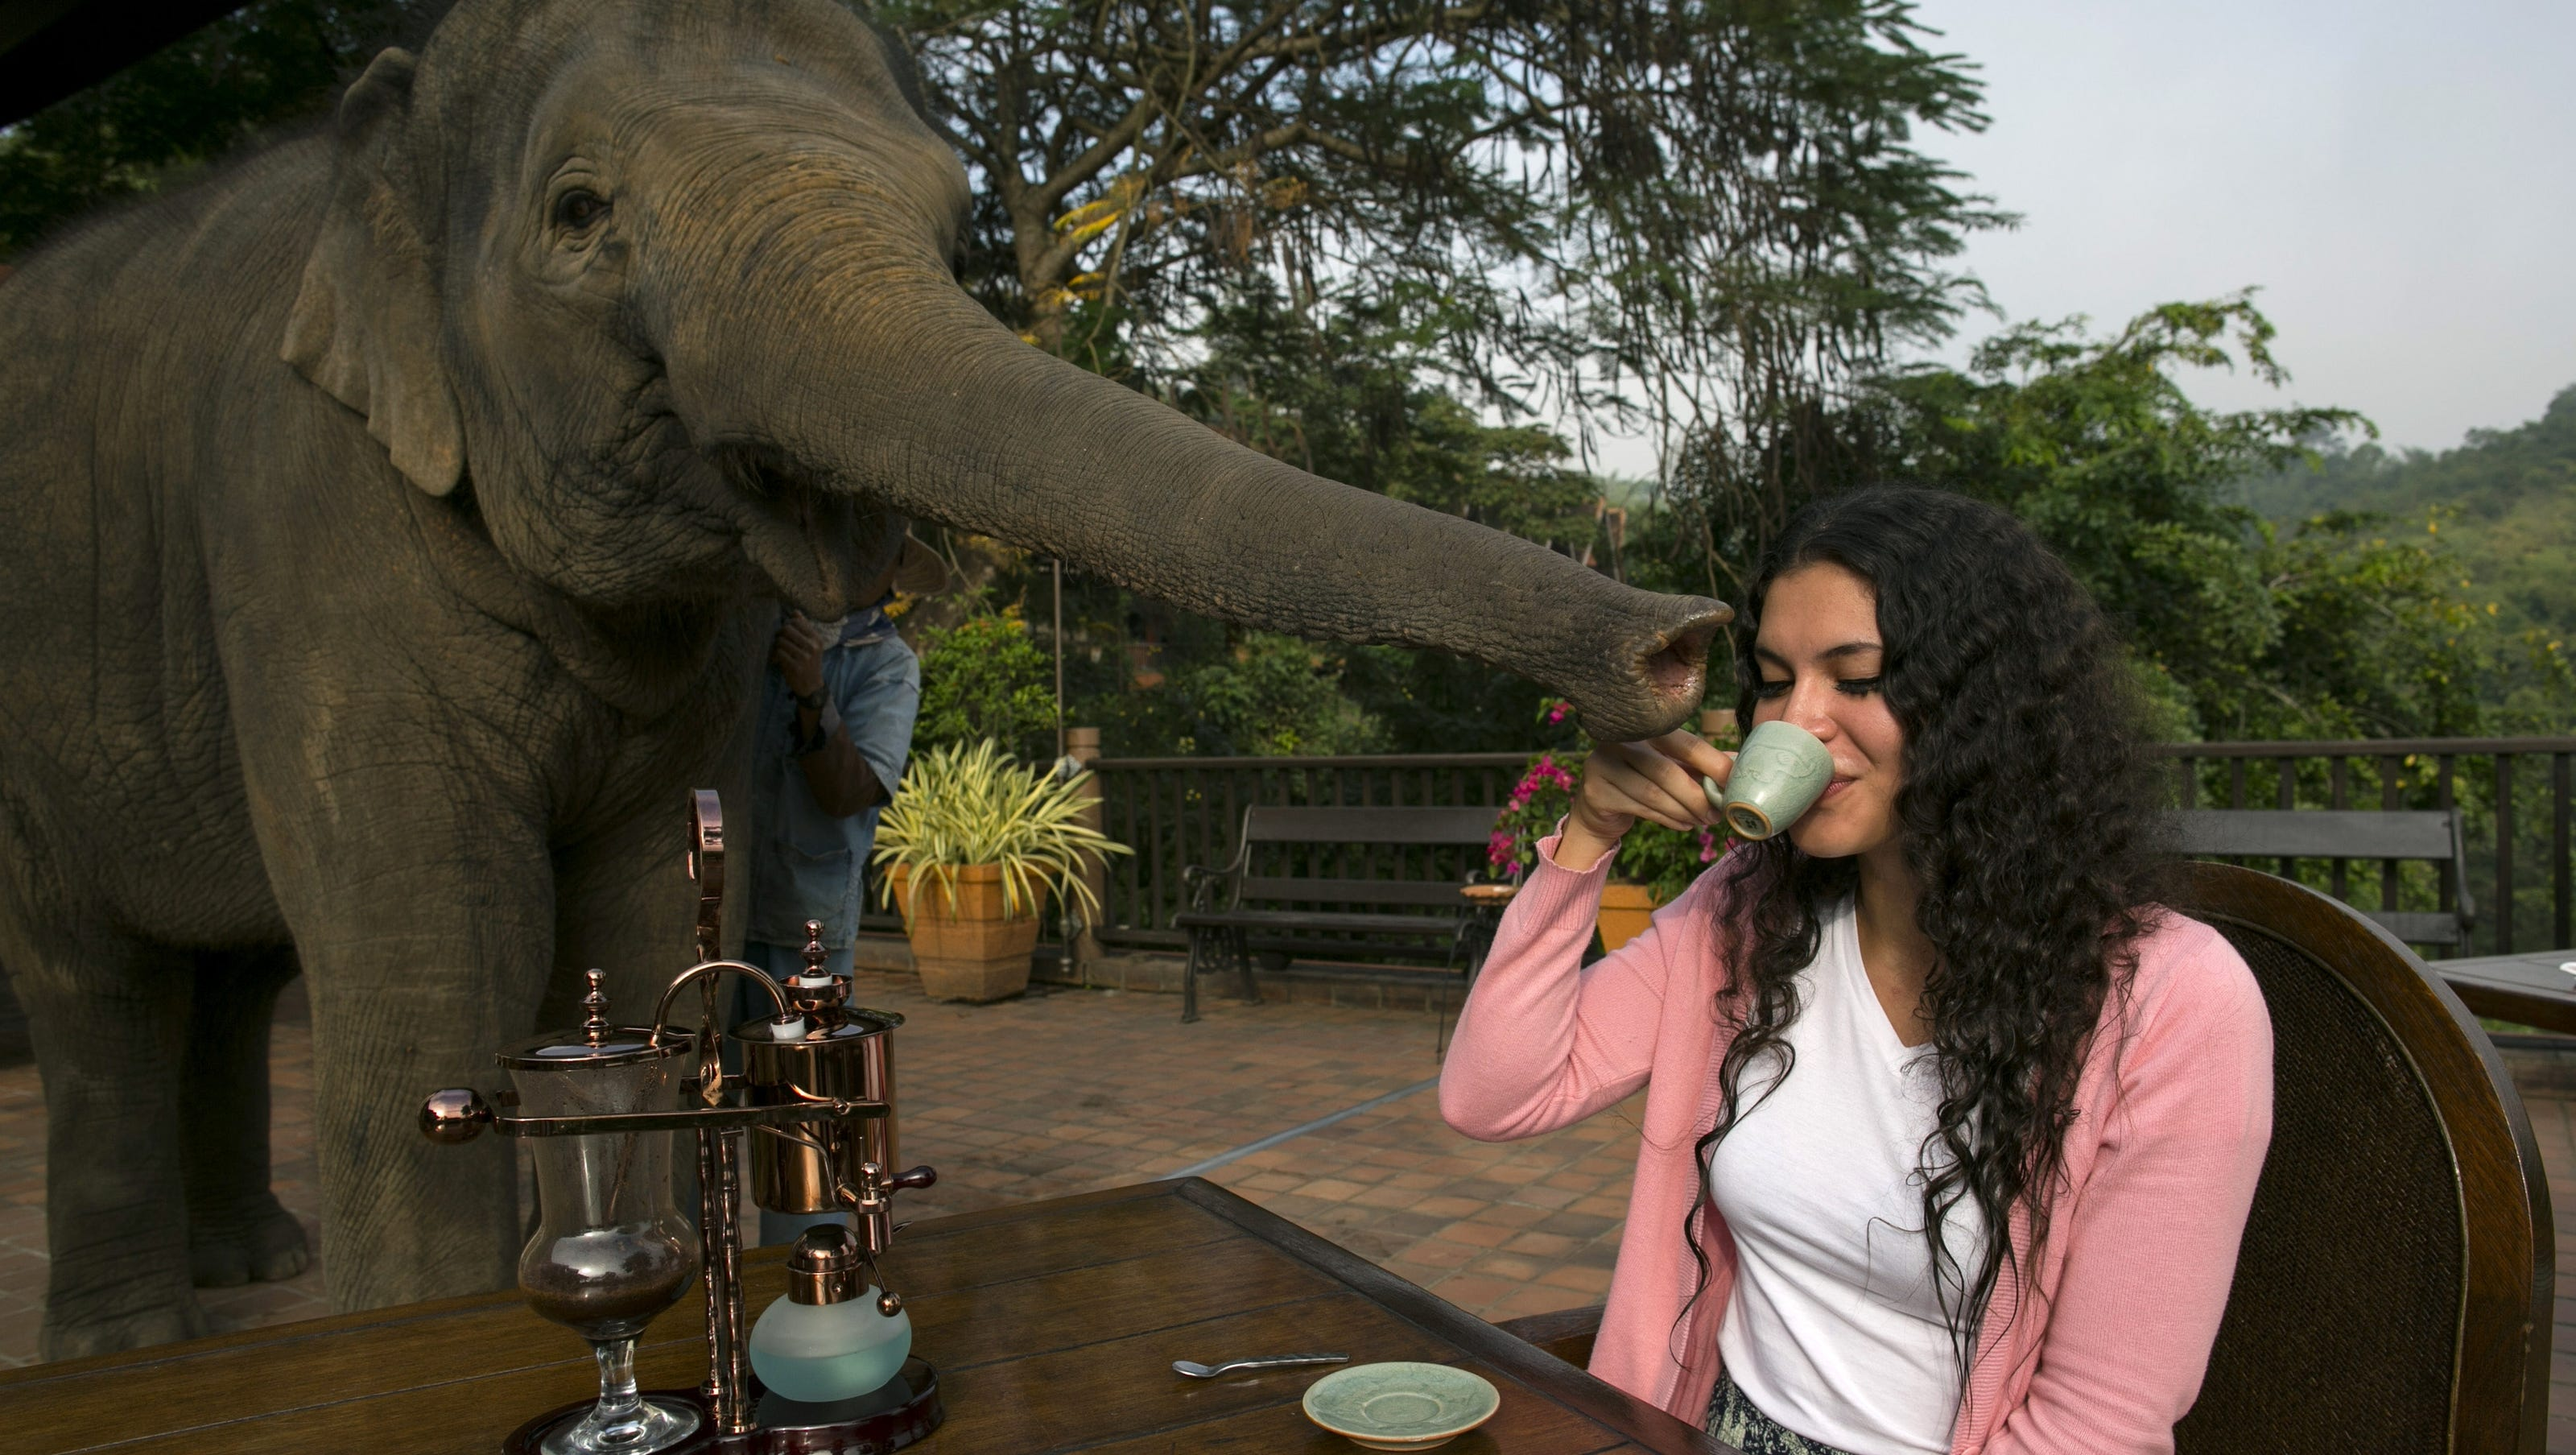 Elephant-dung coffee lures intrepid foodies to Thailand